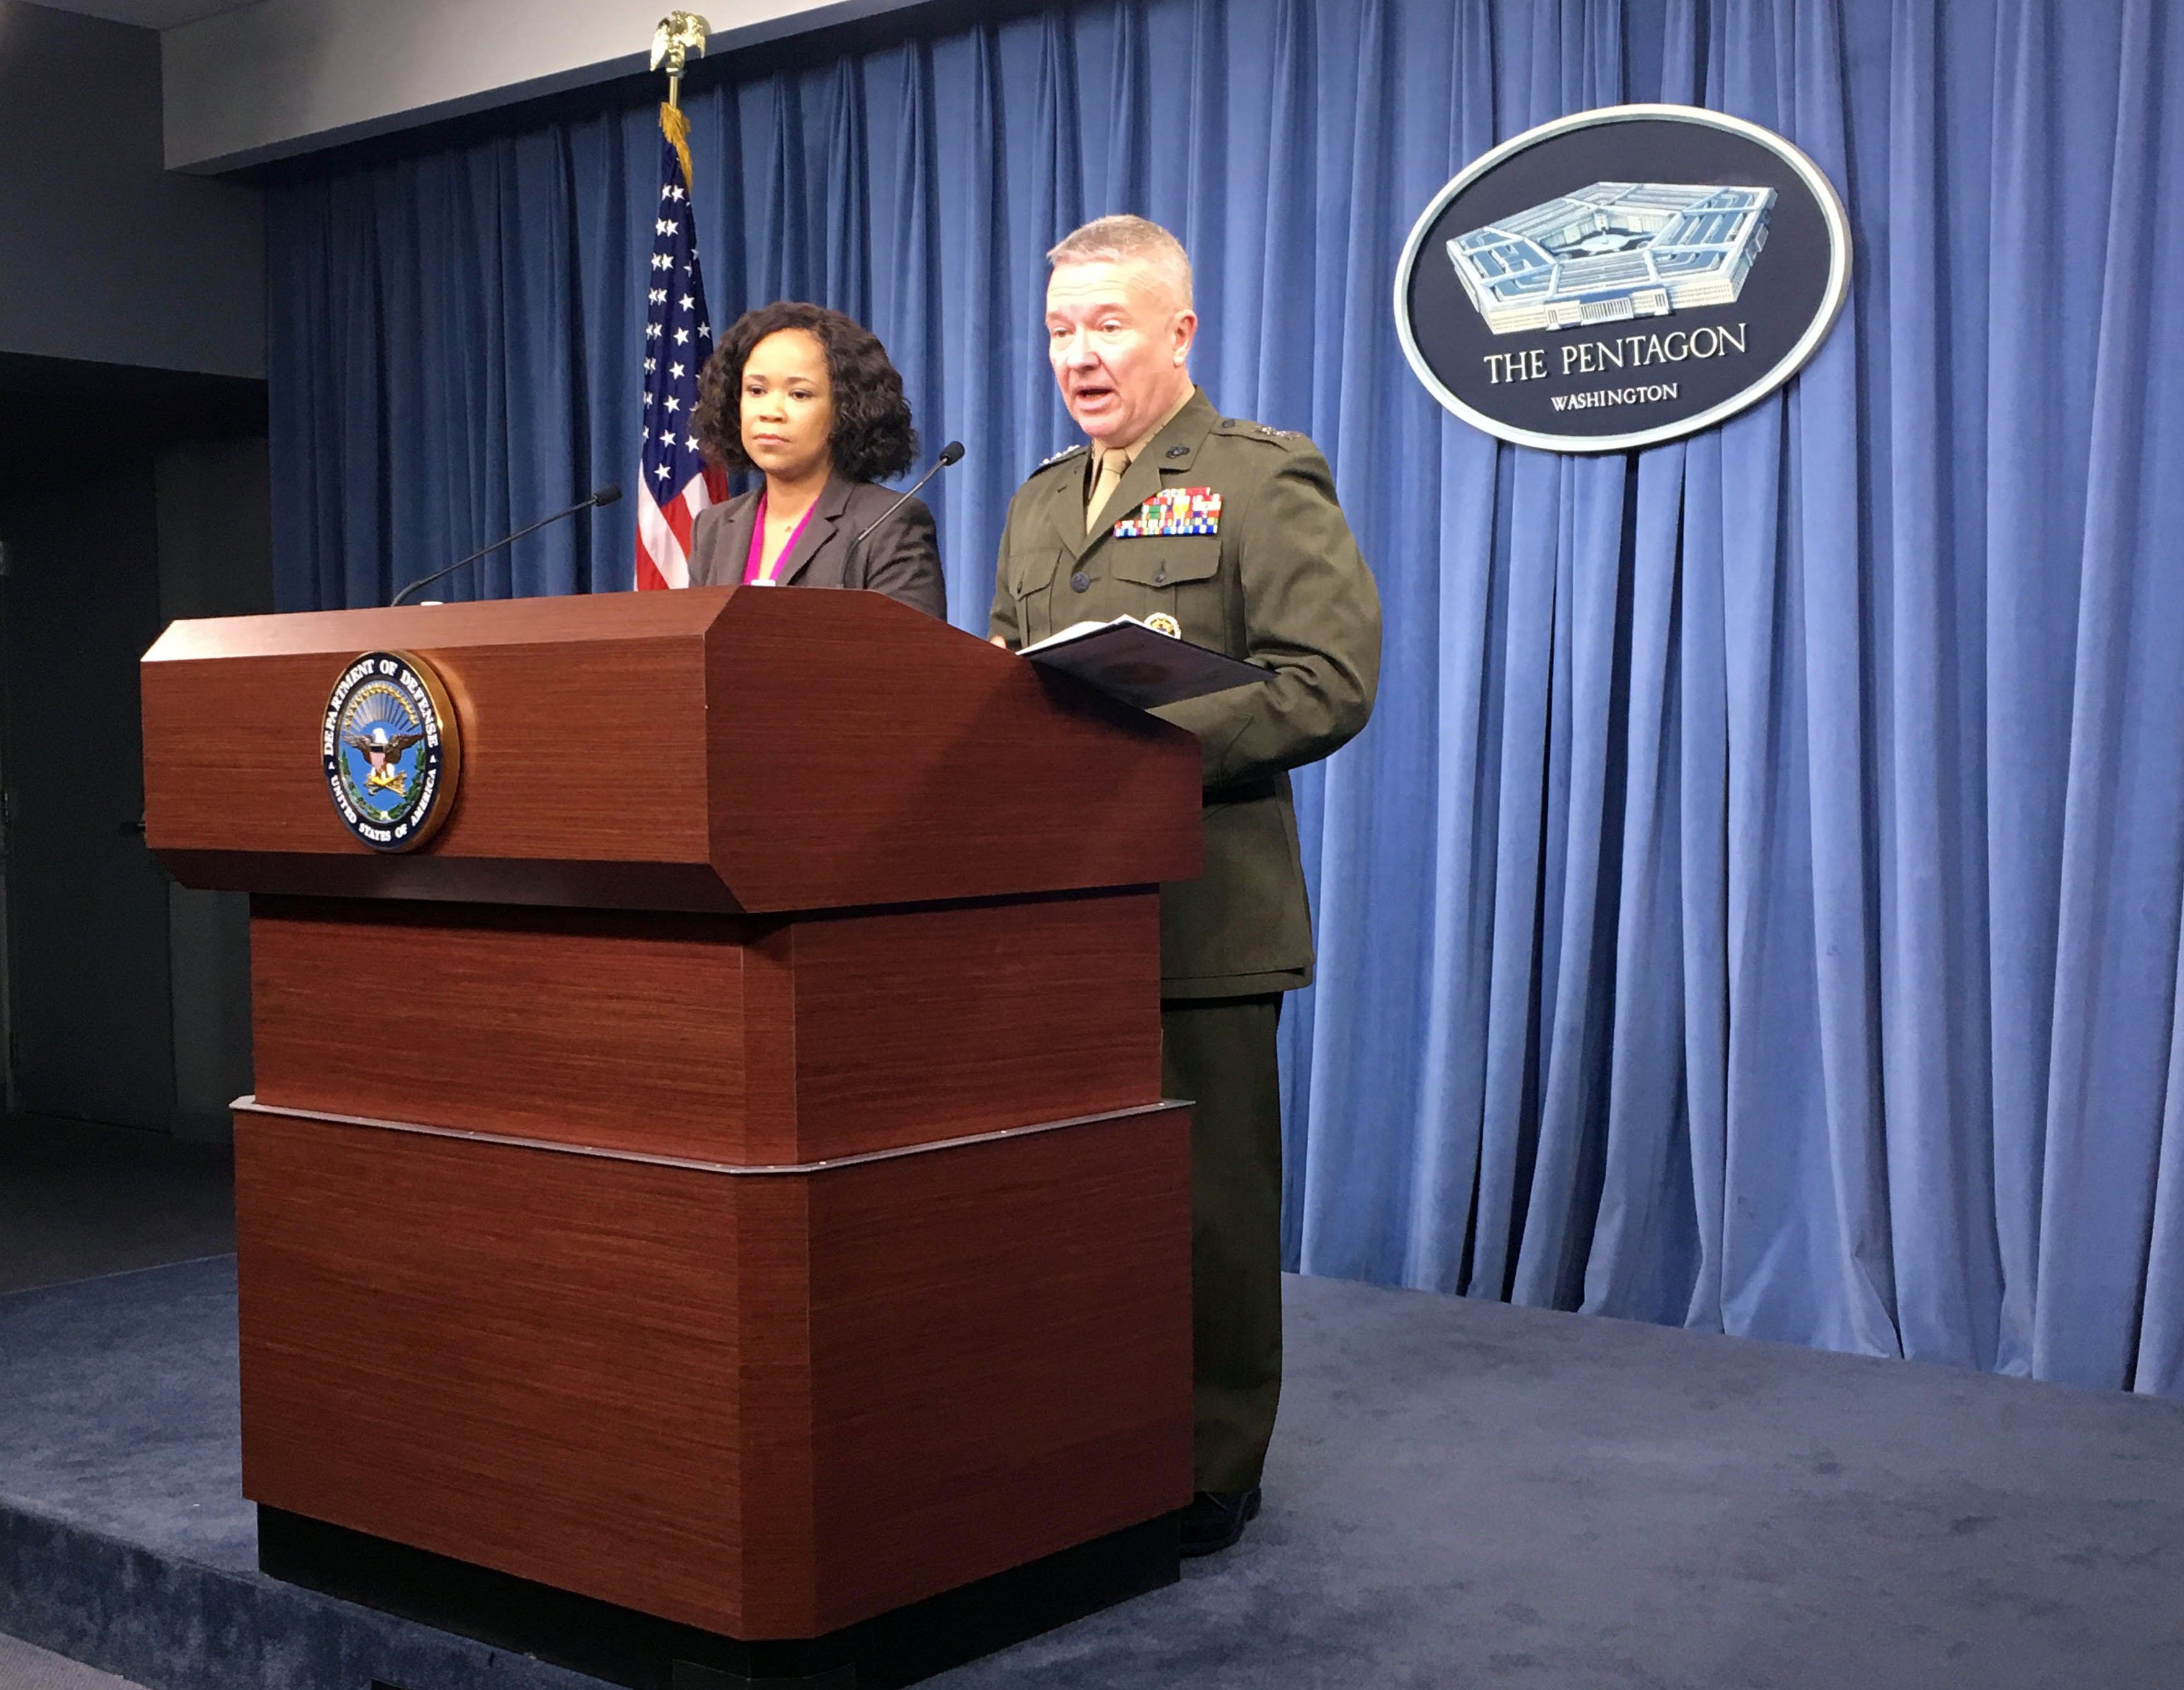 Pentagon spokeswoman Dana White and Marine Lieutenant General Kenneth McKenzie Jr. brief the media at the Pentagon in this April 5, 2018 photo in Washington, DC. (THOMAS WATKINS/AFP/Getty Images)